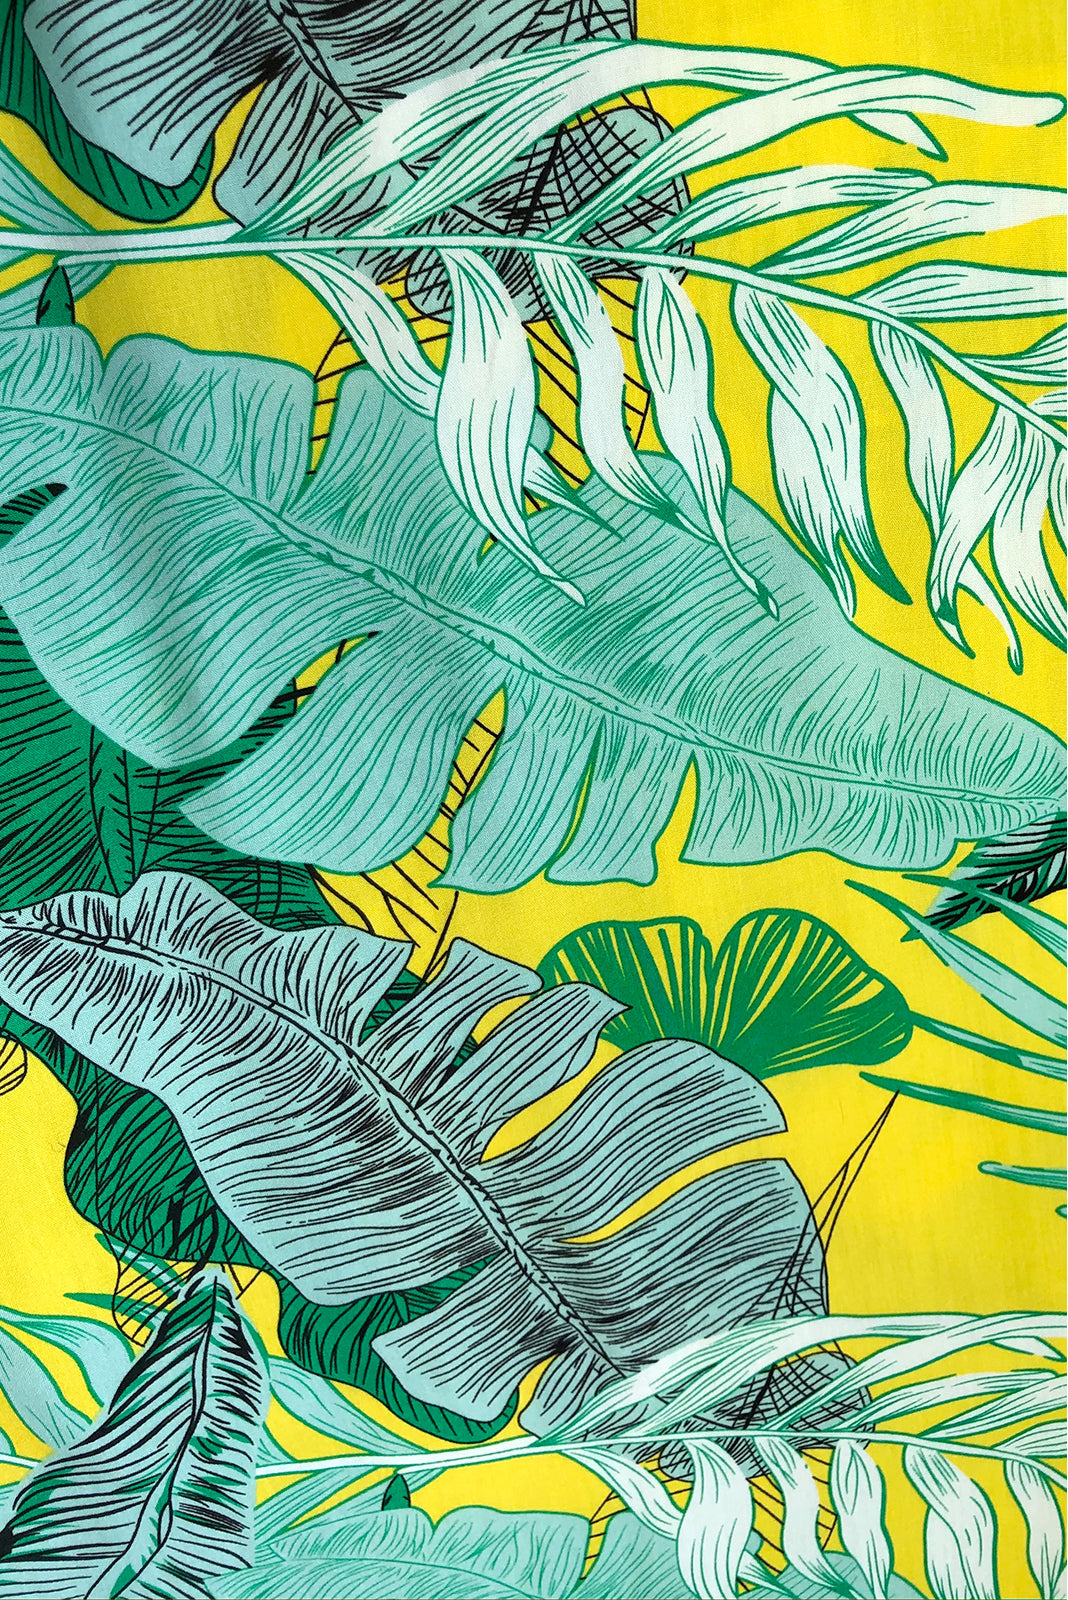 Fabric Swatch of Annabella Palm Gold Caftan Maxi Dress featuring 100% rayon in bright yellow base with green palm print.